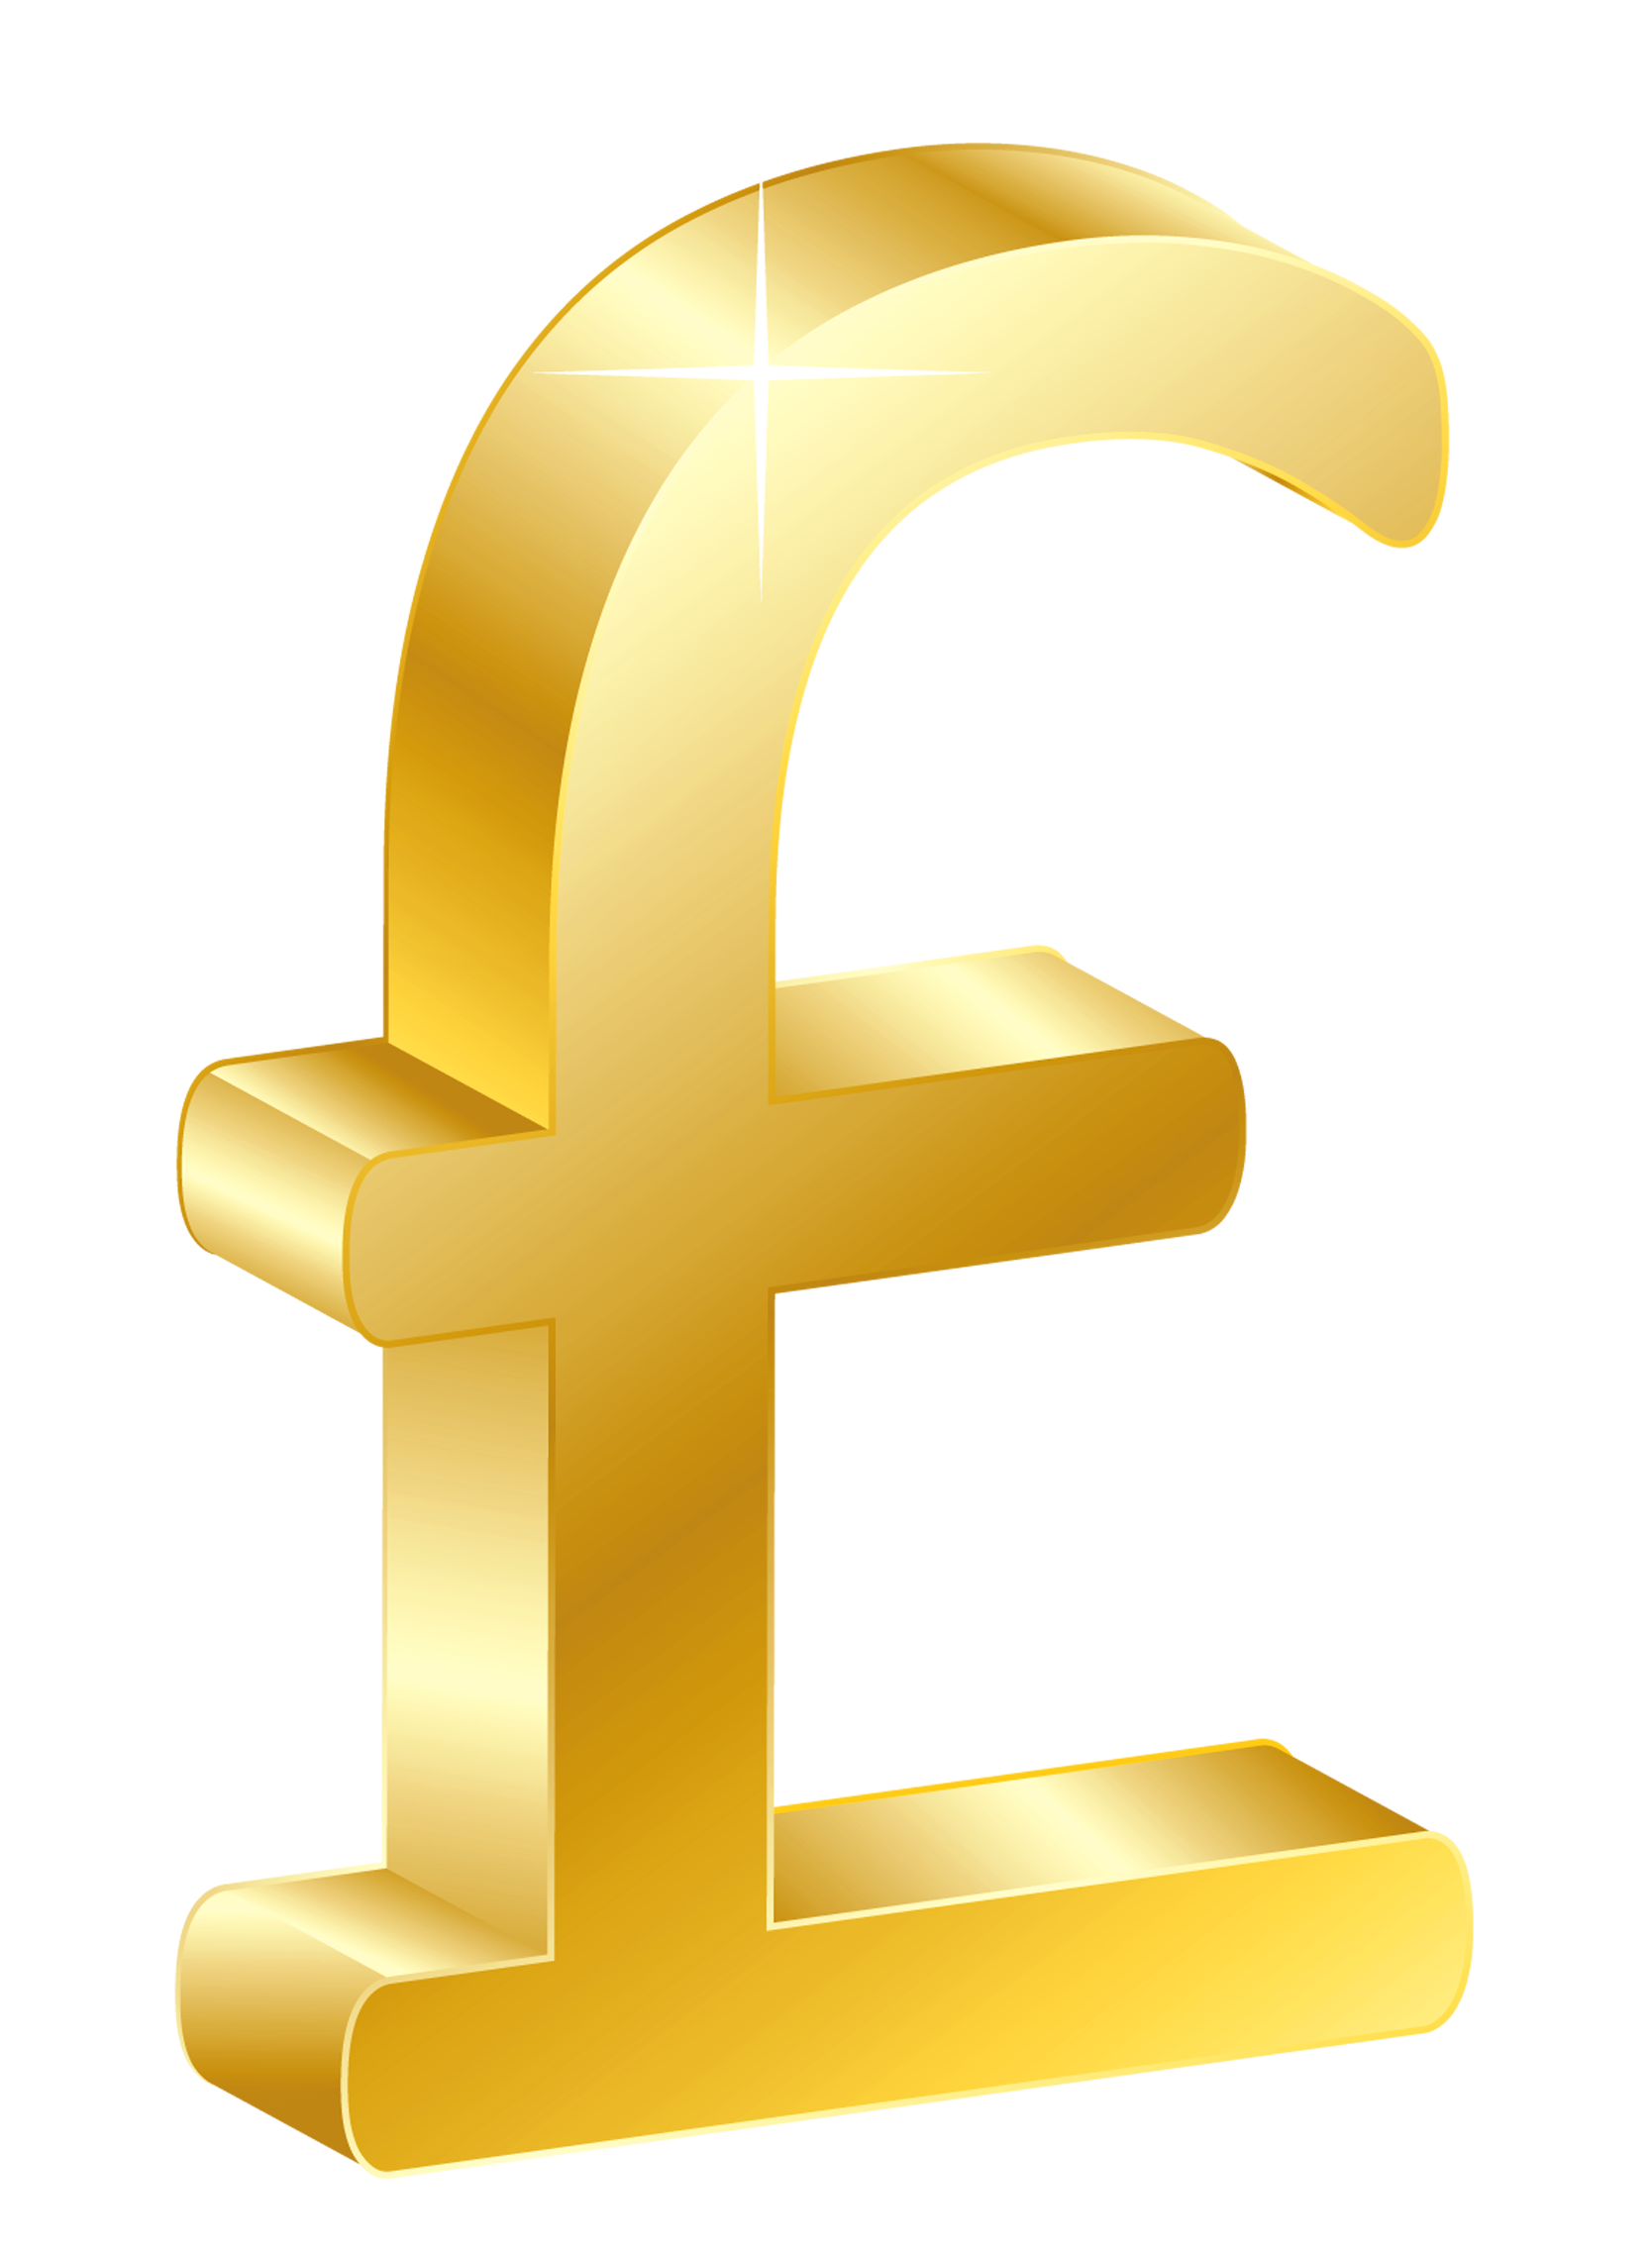 3D Gold UK Pound PNG Clipart.